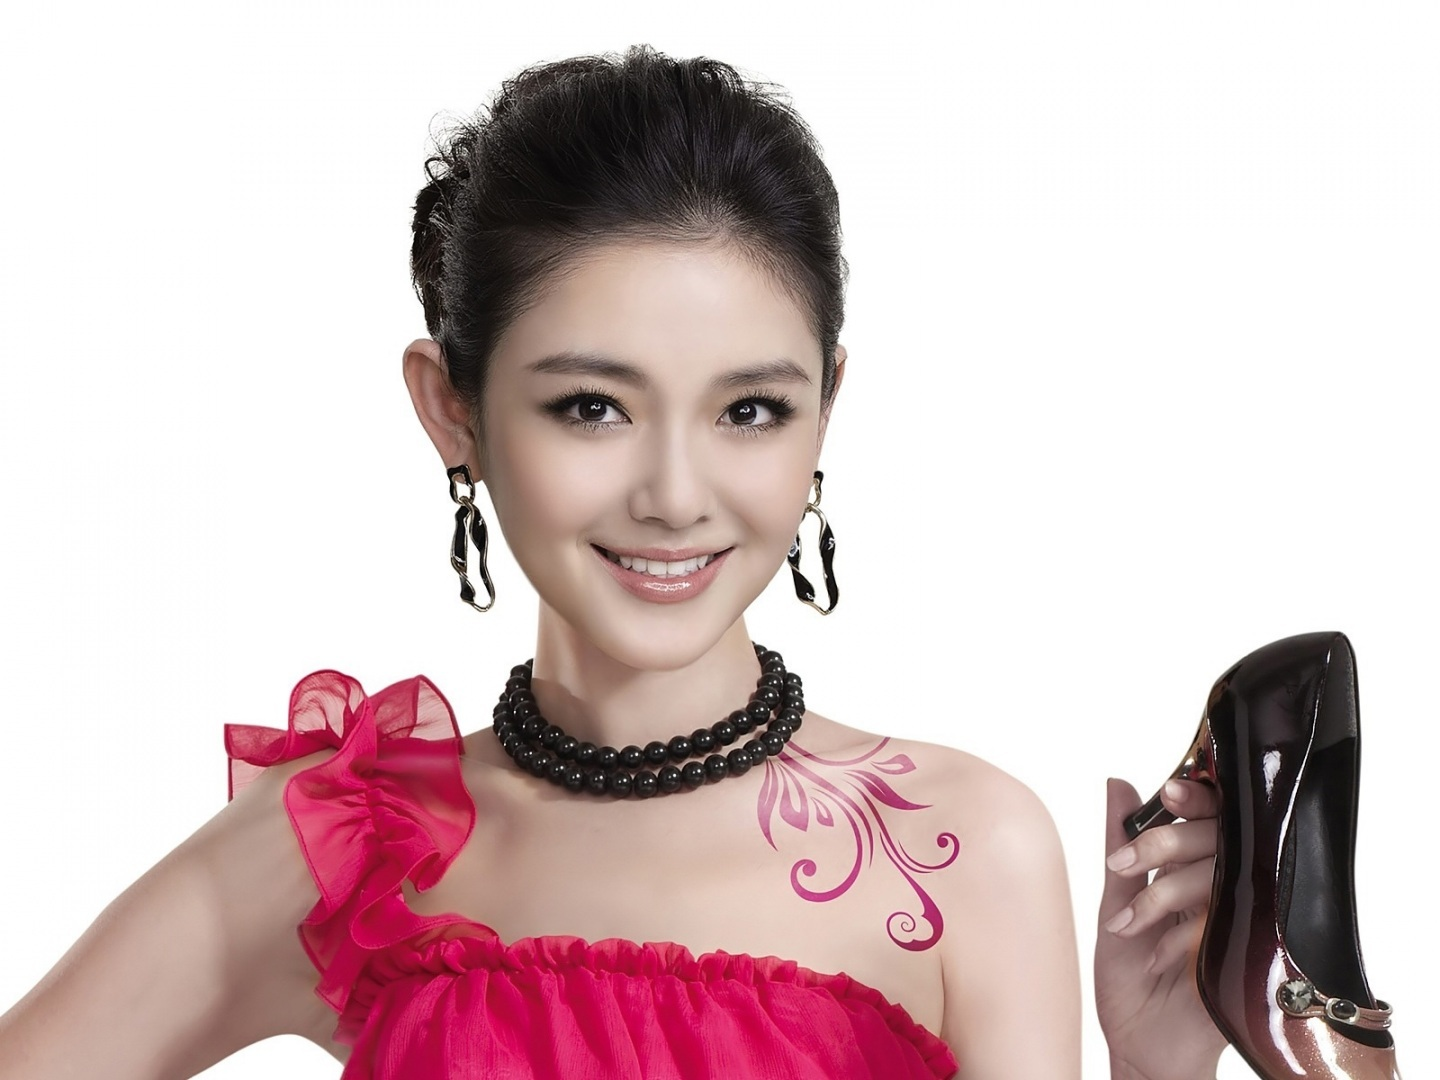 1440x1080 - Barbie Hsu Wallpapers 27